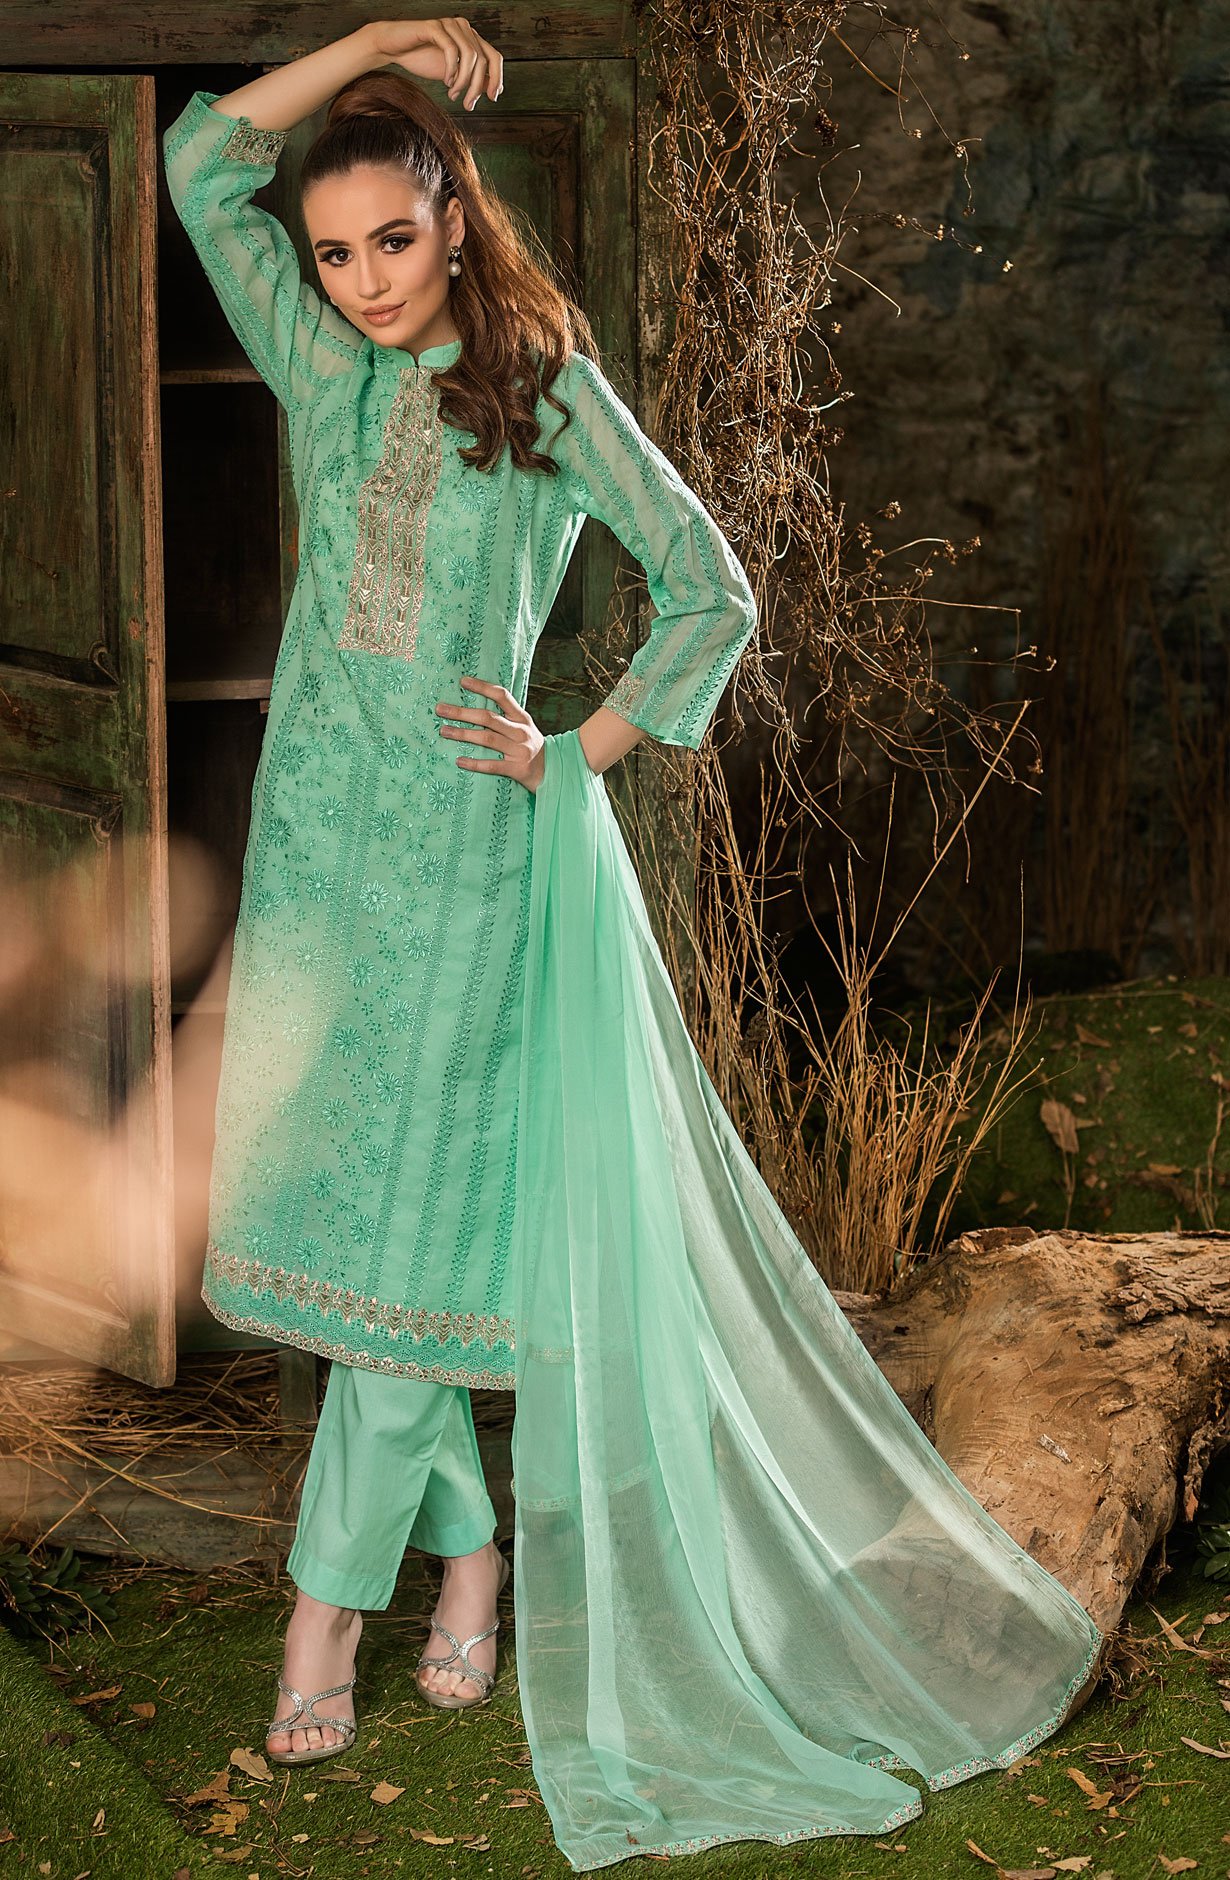 9220c5e464f Cotton Embroidered Sea Green Salwar Kameez Dupatta with Zari Work - ROY2522